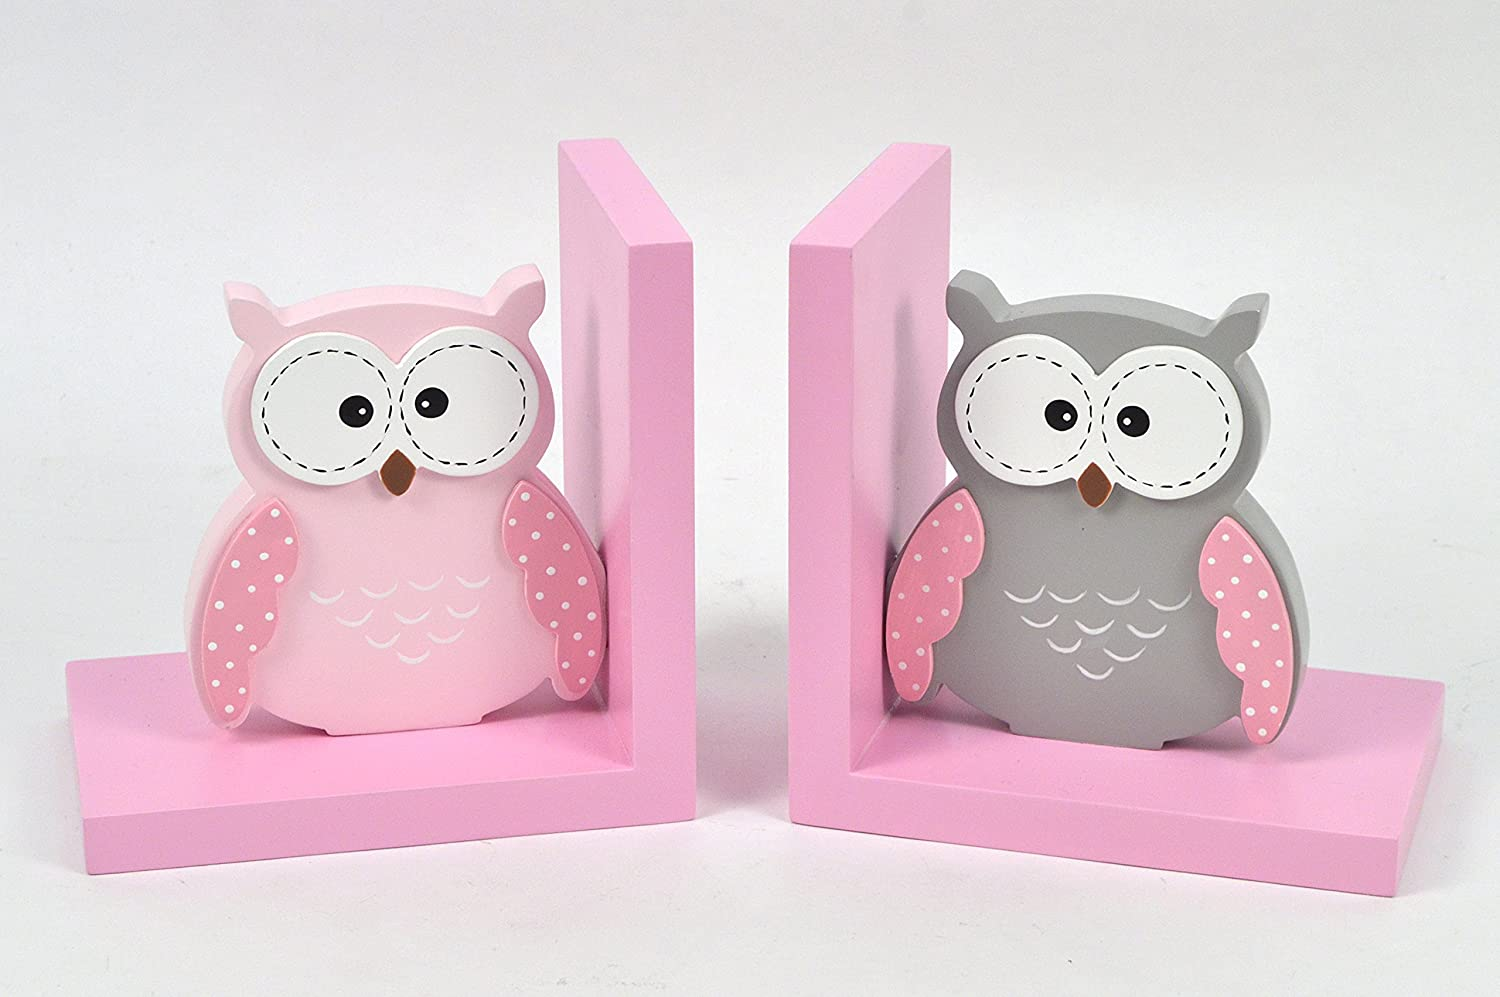 Concepts pink princess castel bookend set (Pink owl)